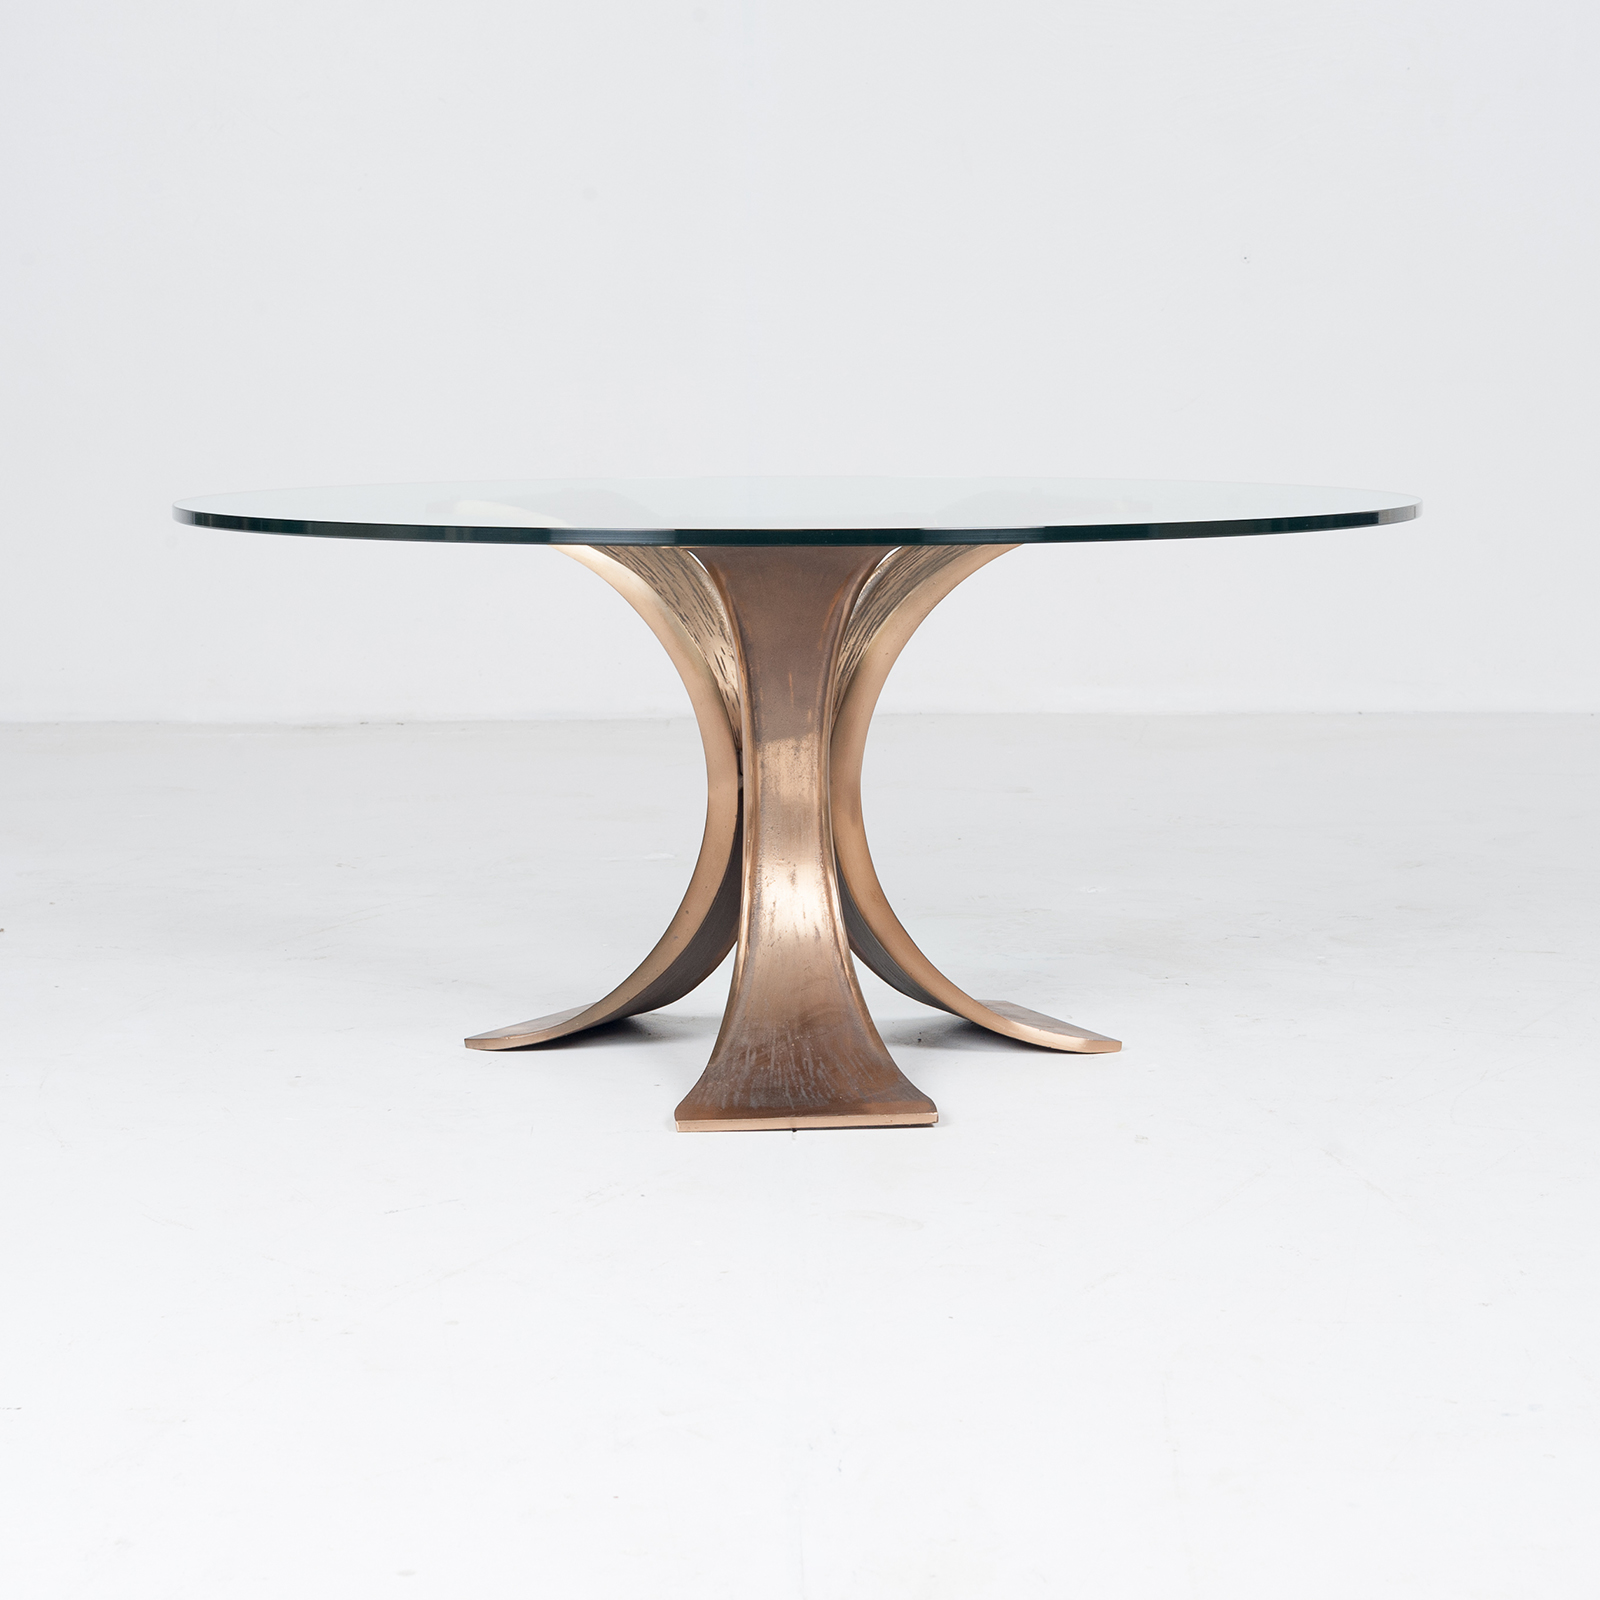 Brutalist Coffee Table In Bronze And Glass, 1970s, Belgium1